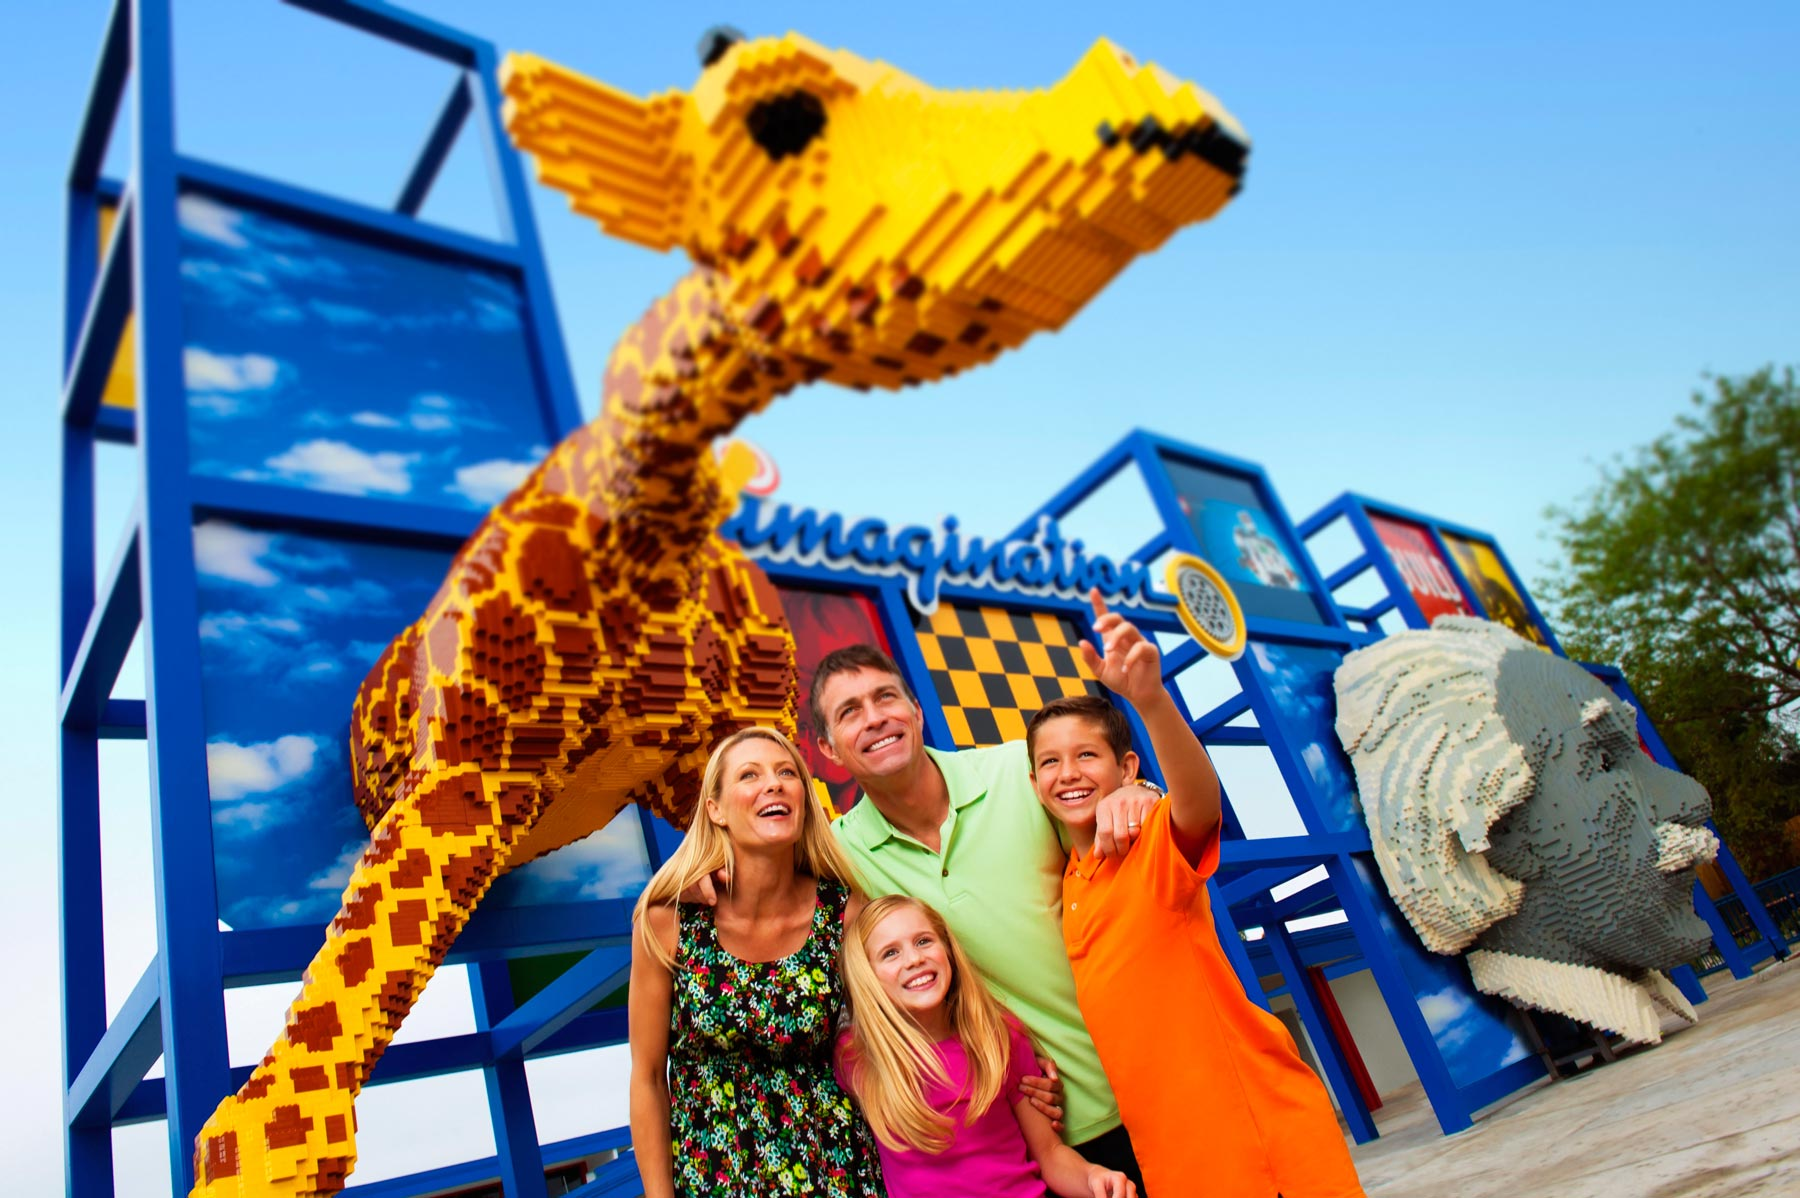 Family in the Legoland